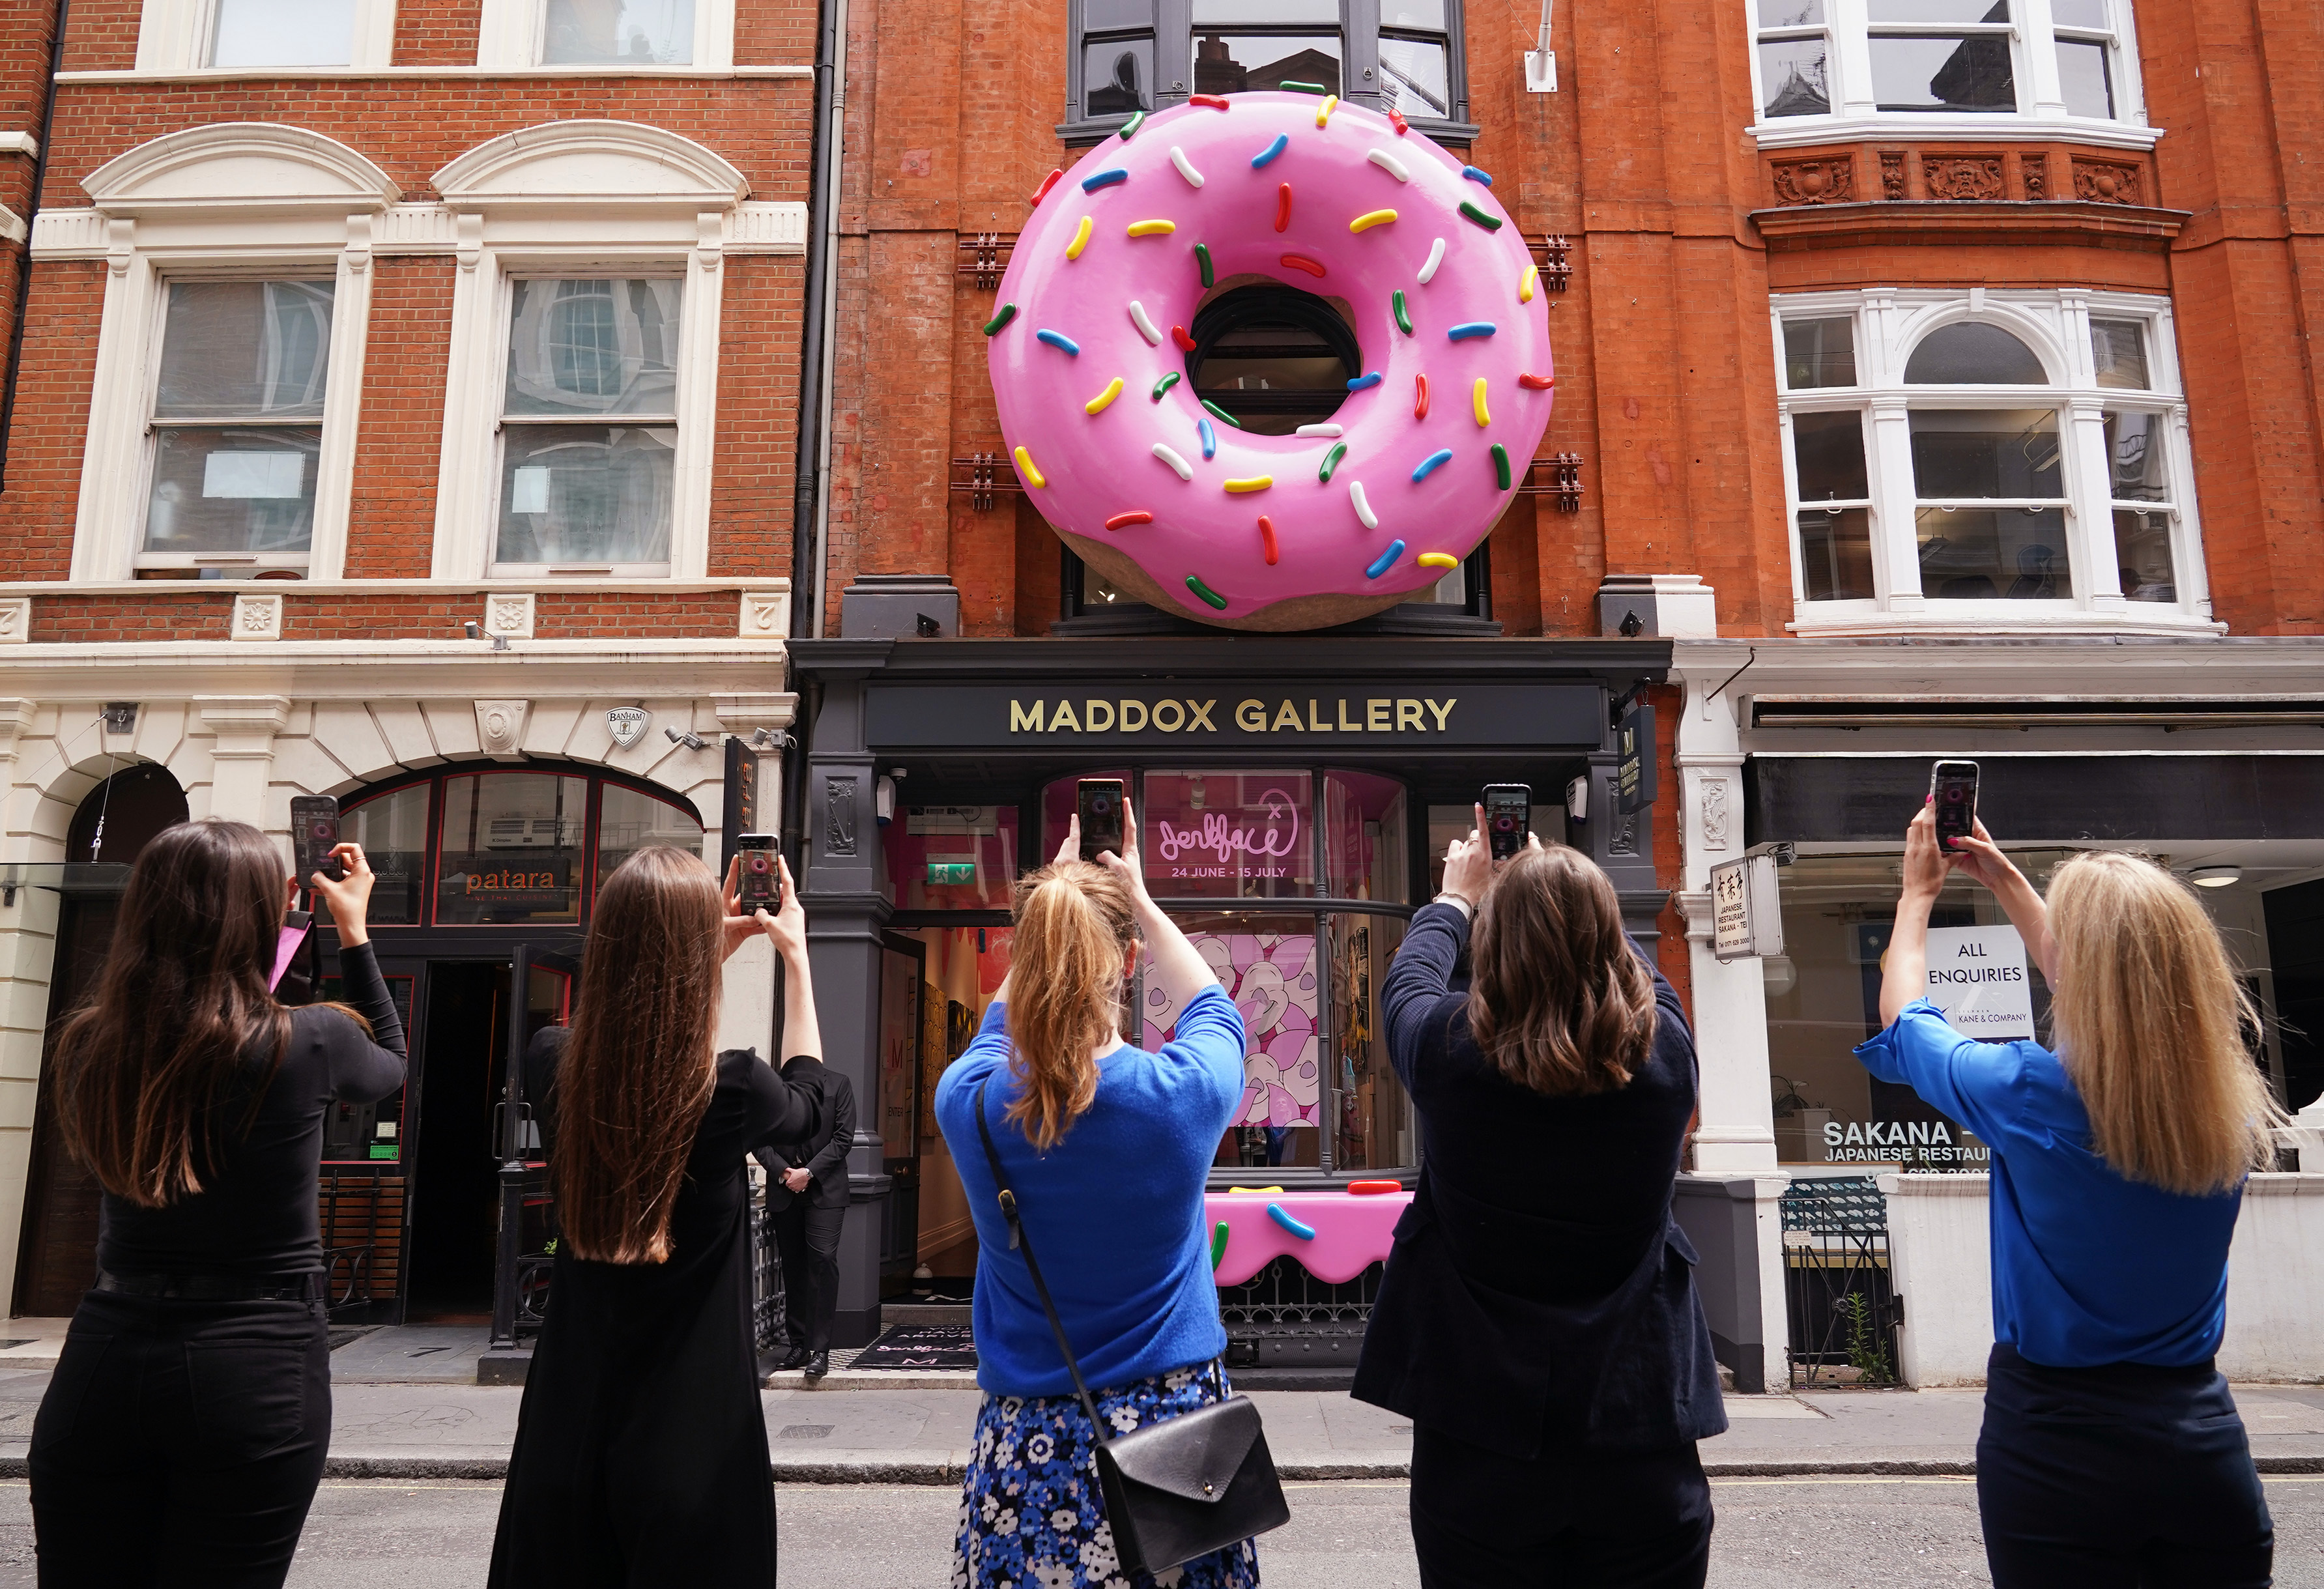 <p>A group of women take photos of a giant donut installation outside the Maddox Gallery in Mayfair, London, to celebrate a new exhibition entitled Villainy, a body of work by an anonymous street artist from New York who operates under the alias, 'Jerkface'. Picture date: Thursday June 24, 2021.</p>